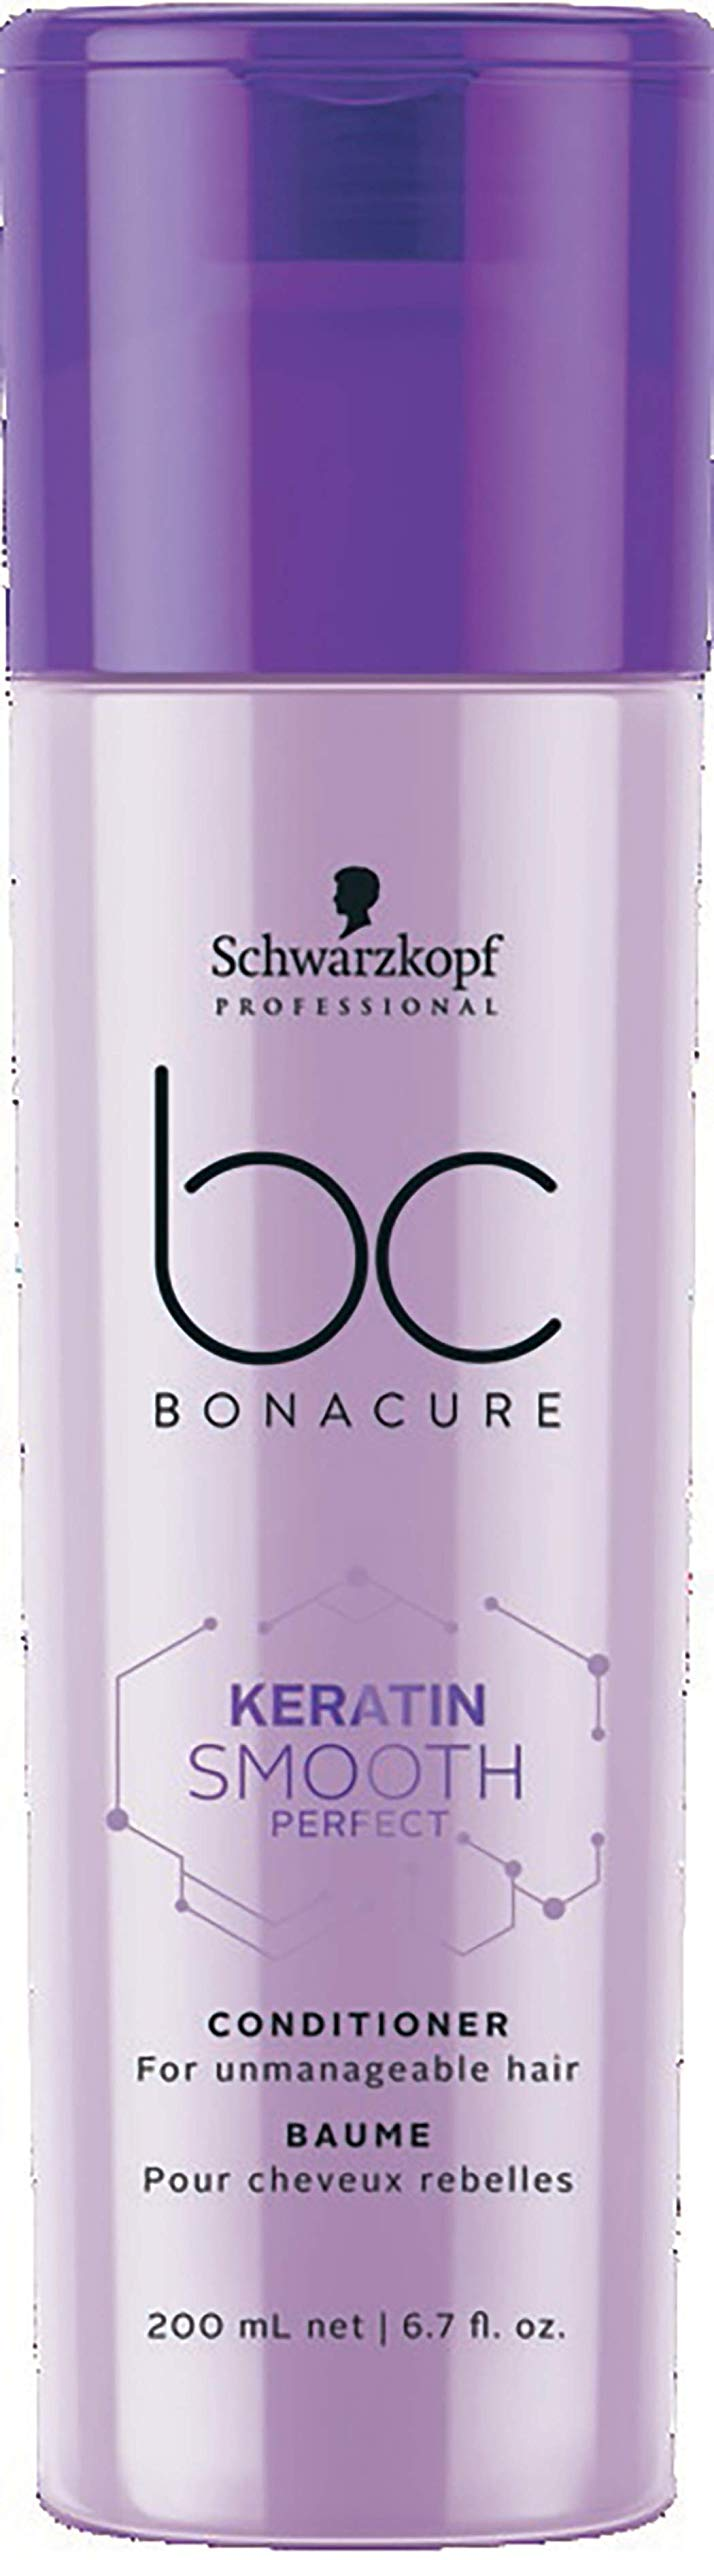 BC BONACURE Keratin Smooth Perfect Conditioner, 6.7-Ounce